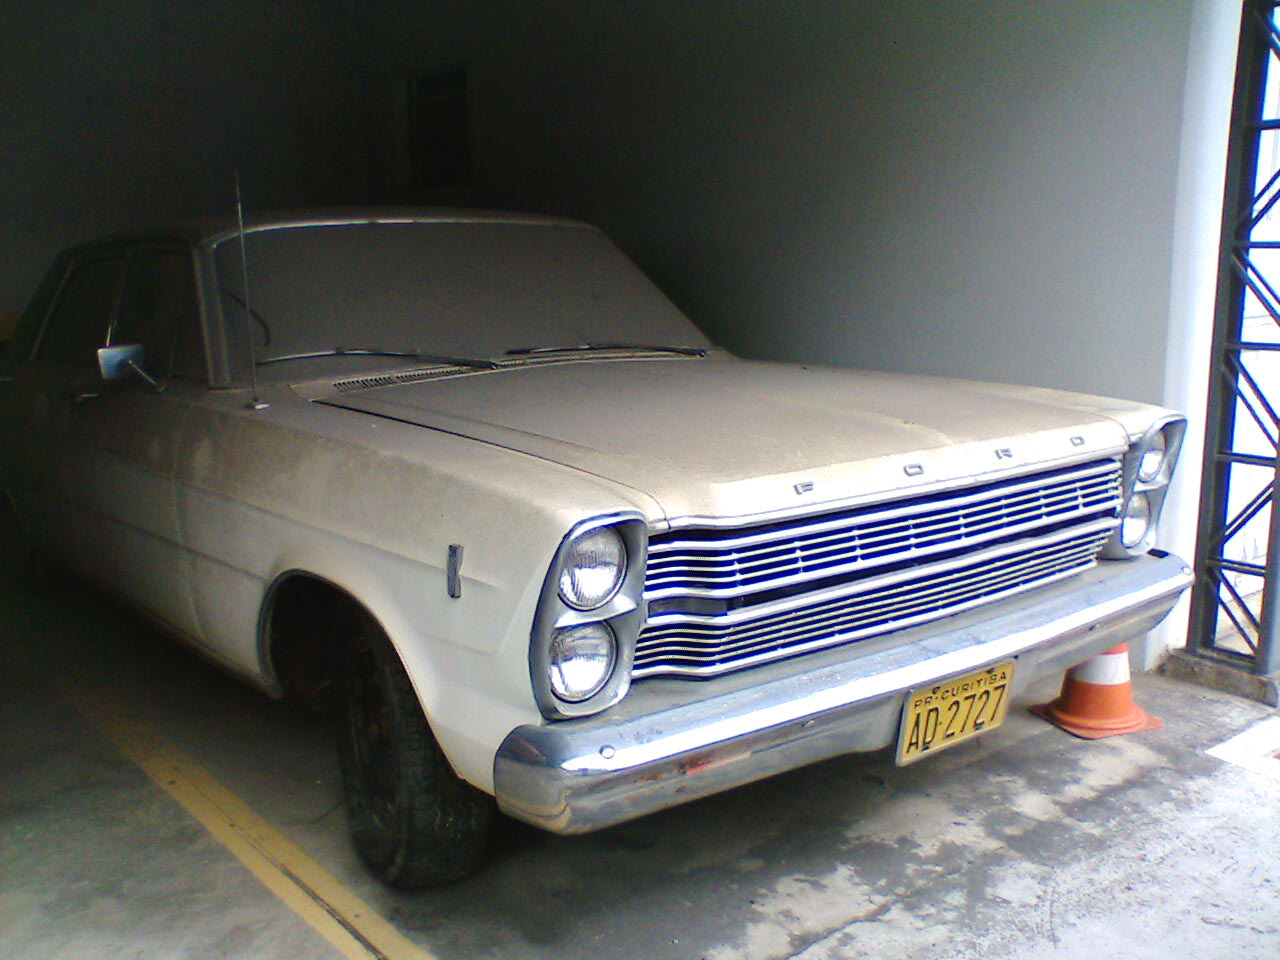 galaxie500 671 Ford Galaxie 500